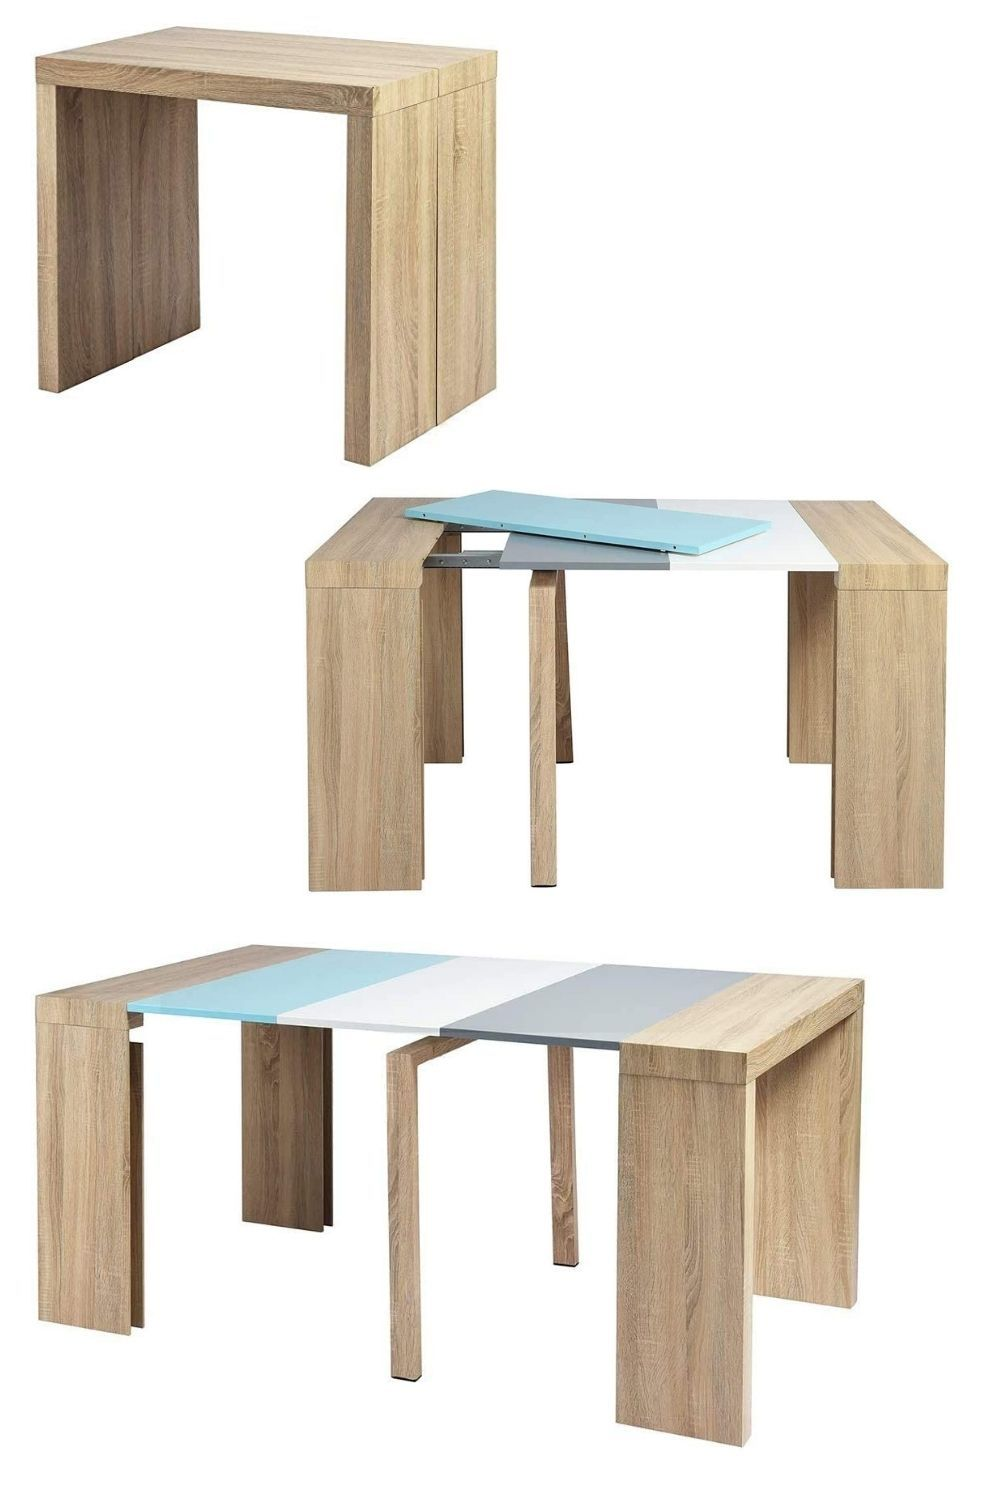 expandable dining table - 27 amazing dining table ideas for small spaces